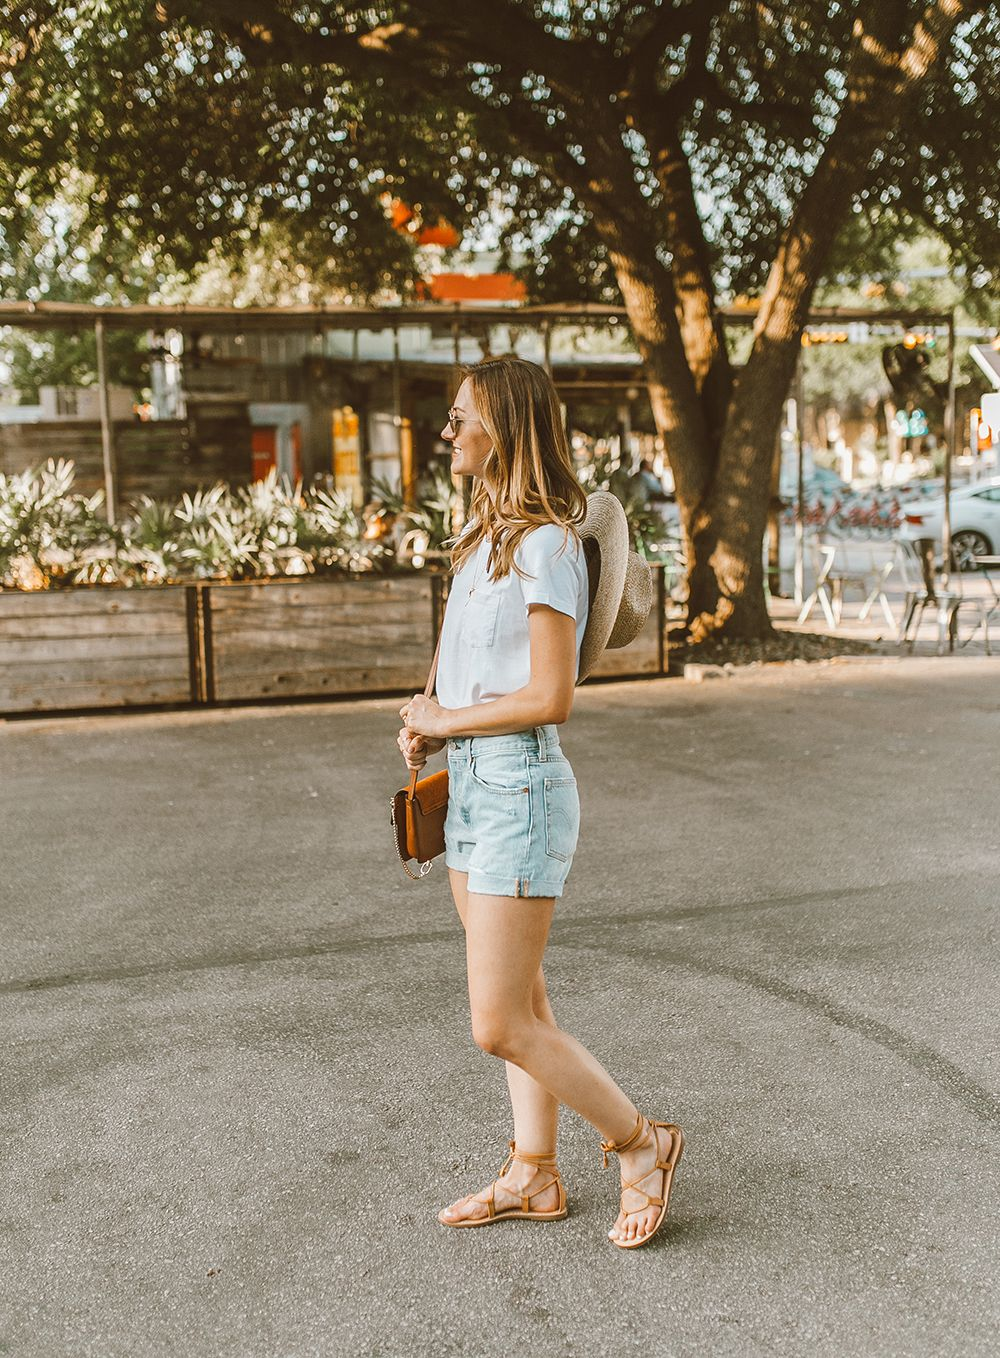 abf2ea41e5f5 livvyland-blog-olivia-watson-austin-texas-fashion-style-blogger-what-to-wear -levis-501-denim-shorts-festival-outfit-idea-10